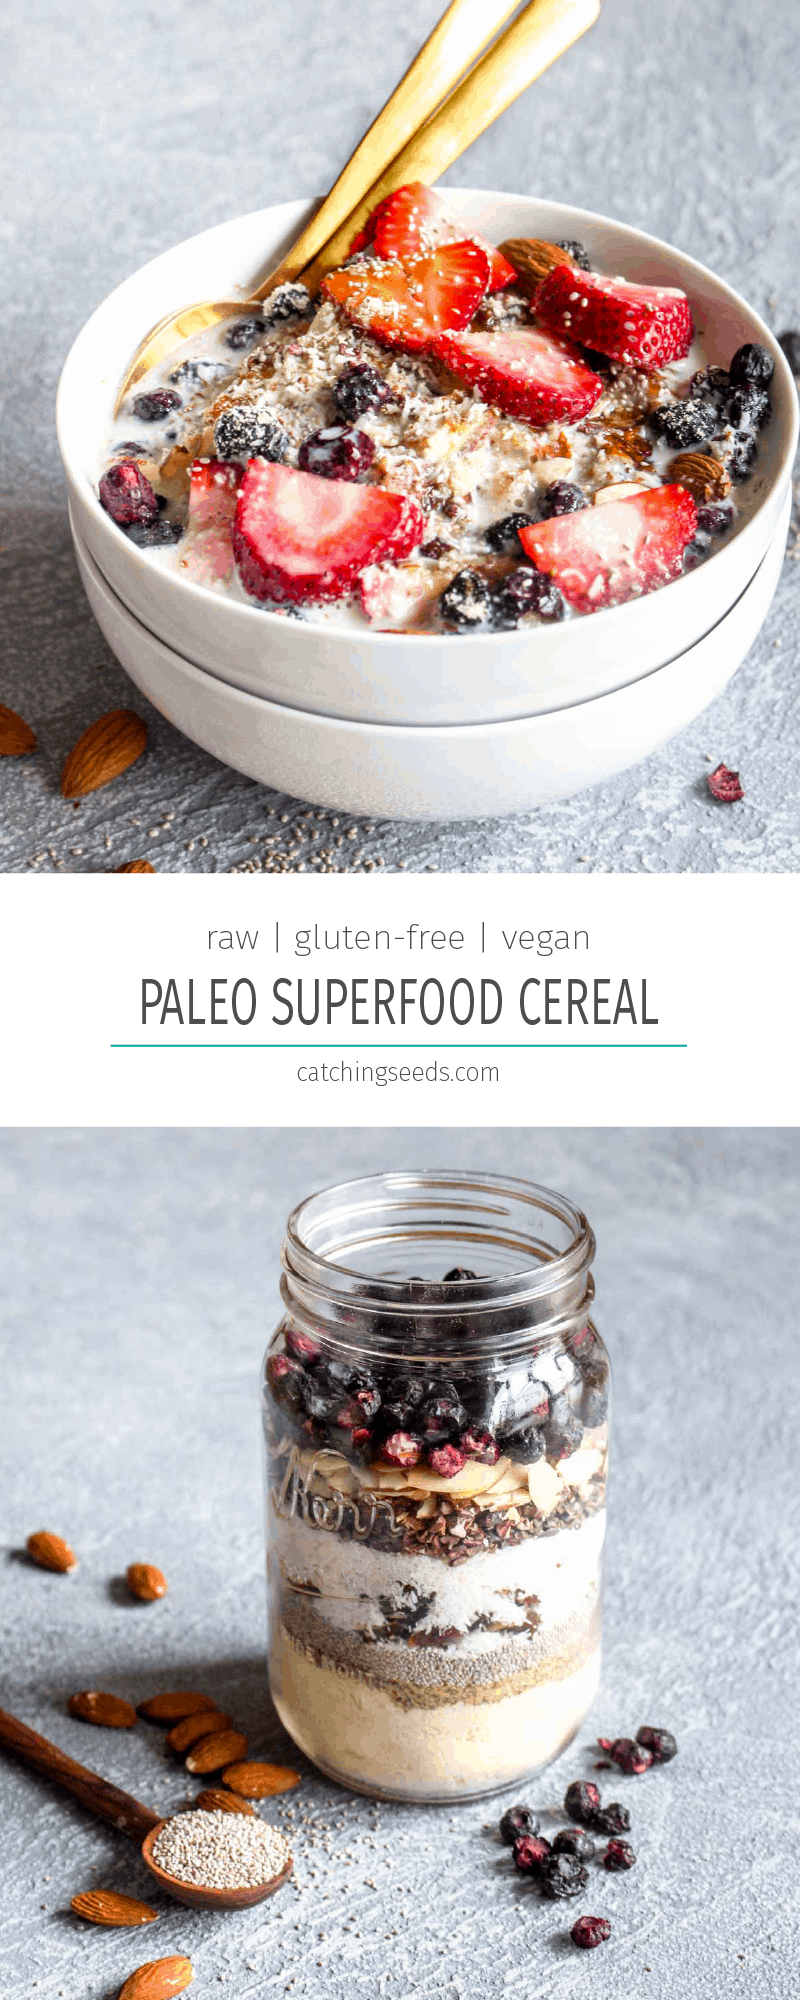 On busy mornings, you'll be thanking your lucky start that you have Paleo Raw Superfood Cereal on deck. This healthy breakfast is packed full of nuts, seeds, and fruits for a satisfying start that will keep you full until lunch. Make a big batch in 10 minutes and then enjoy it all week. Gluten free, vegan & paleo! | CatchingSeeds.com